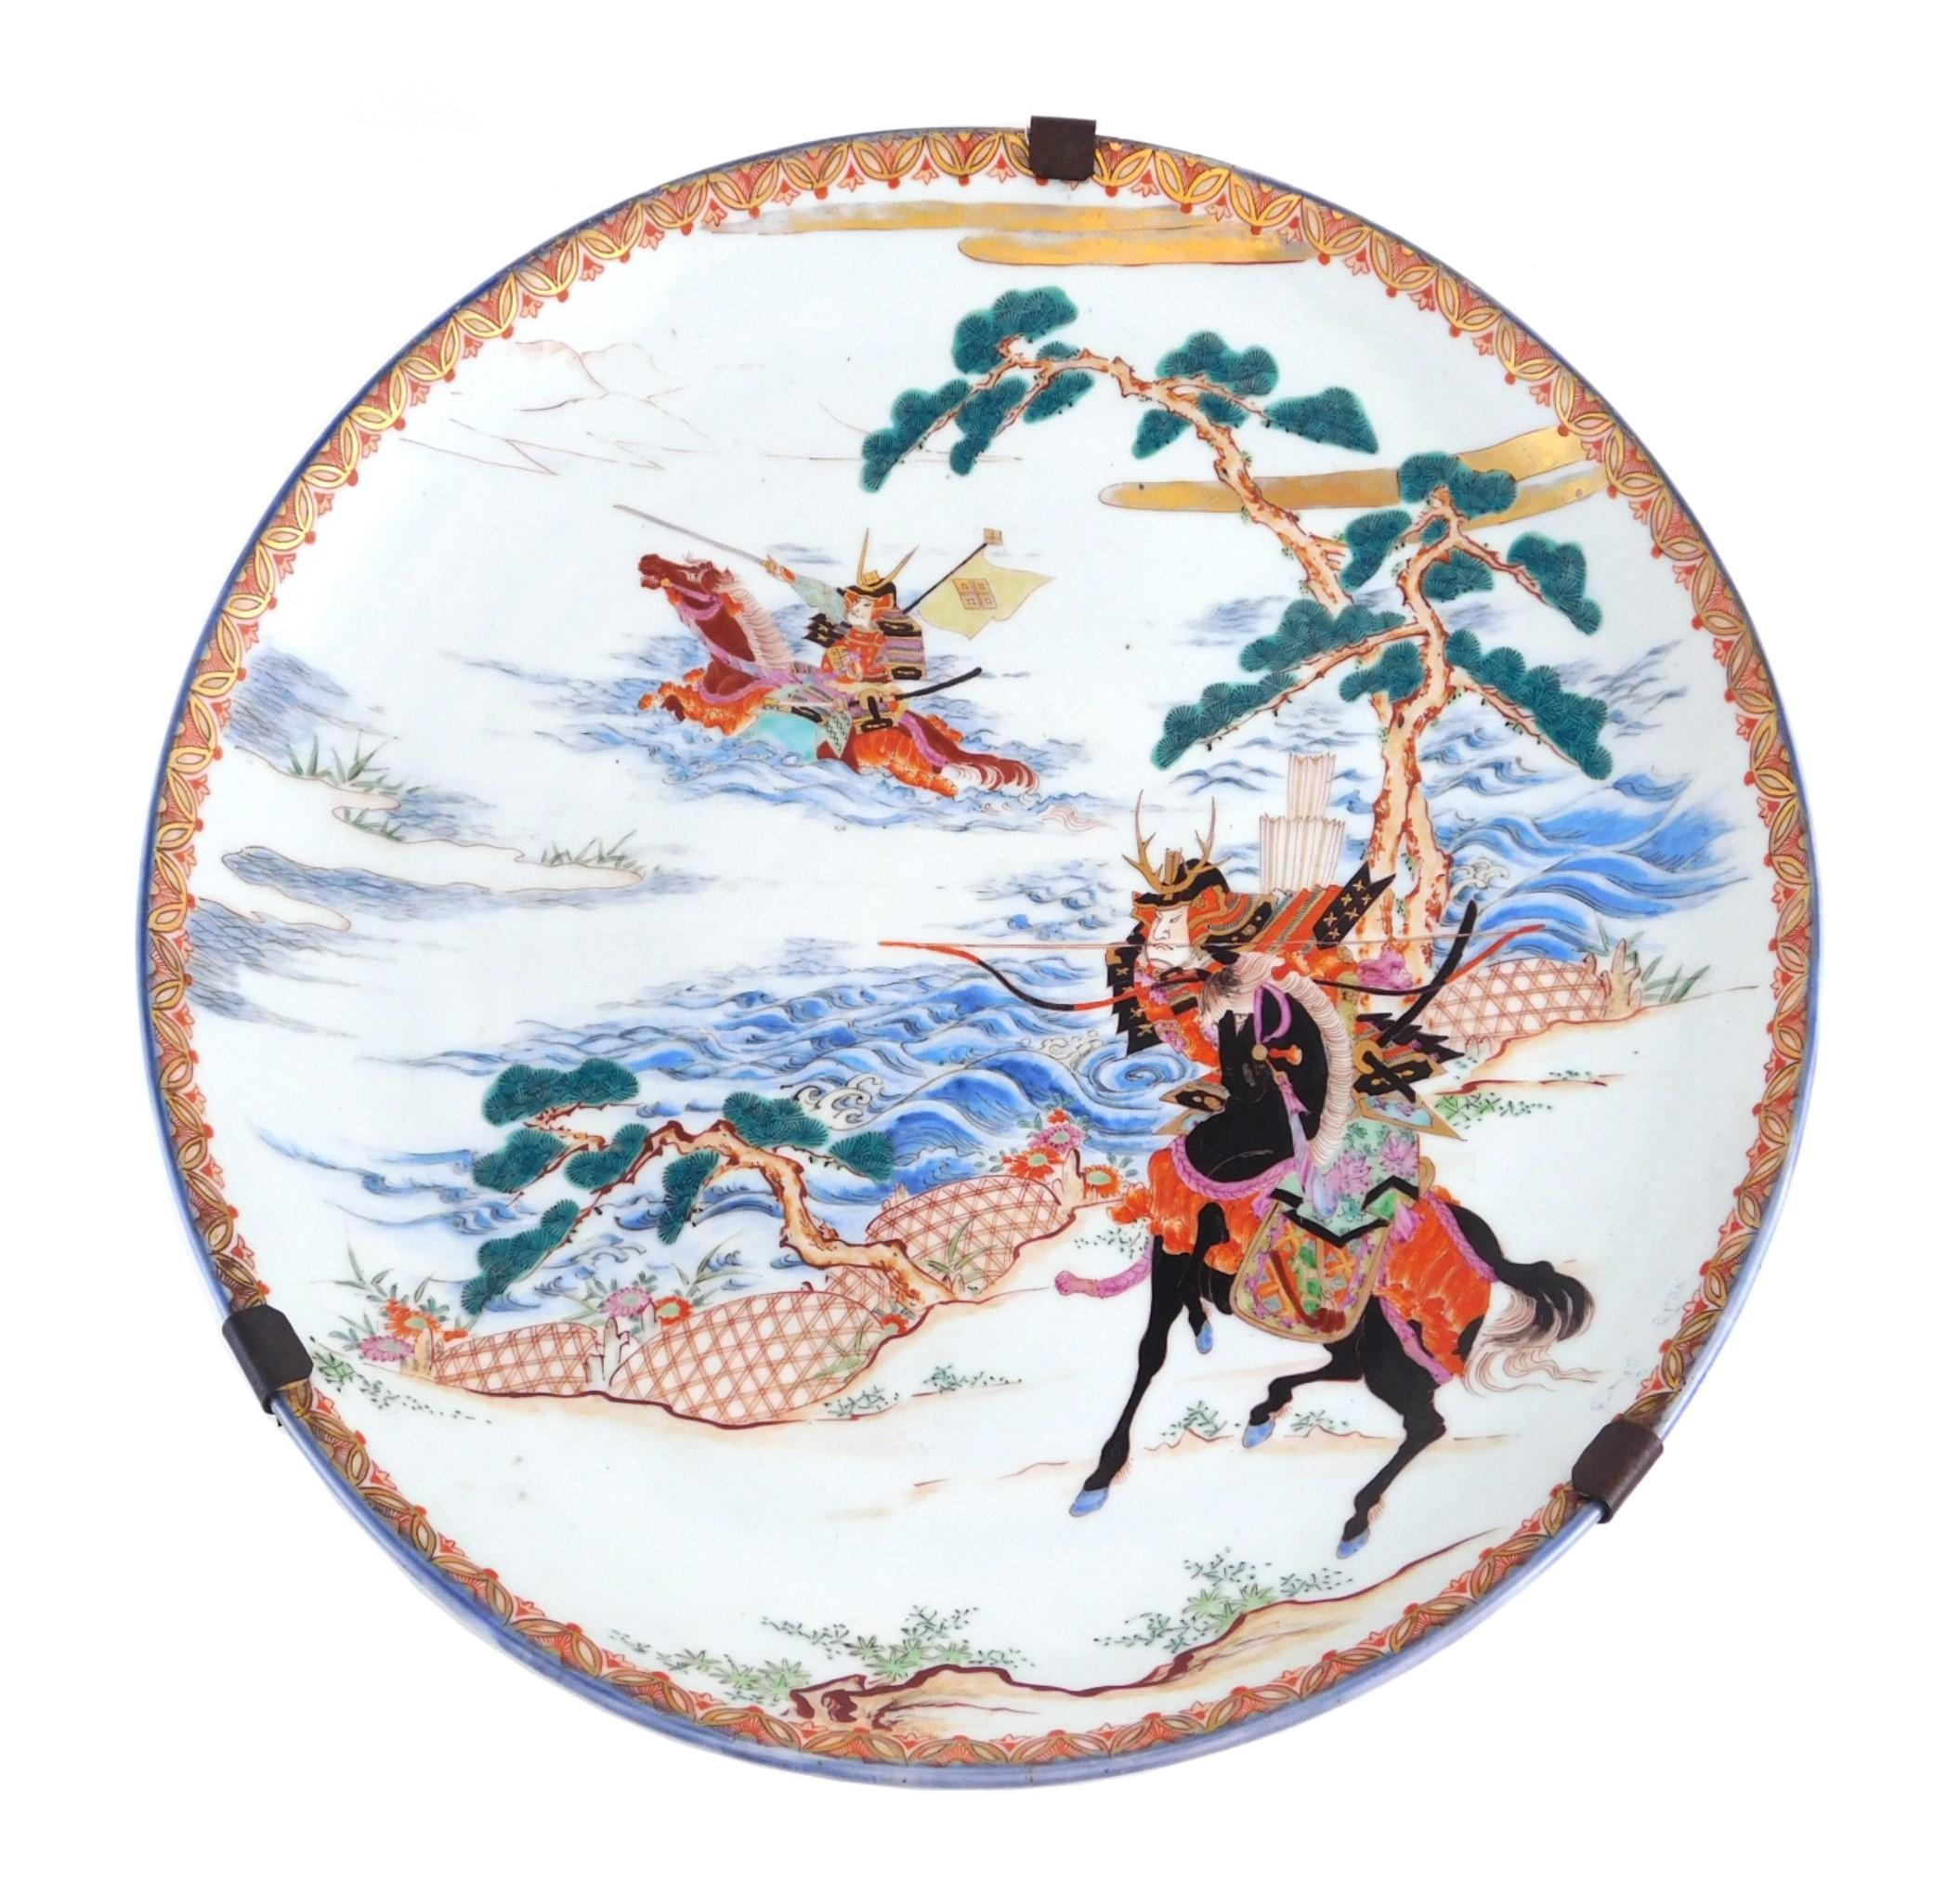 ASIAN: Japanese porcelain charger, 19th C. - 20th C., polychrome decorated with samurai on horseback, wear consistent with age and u...